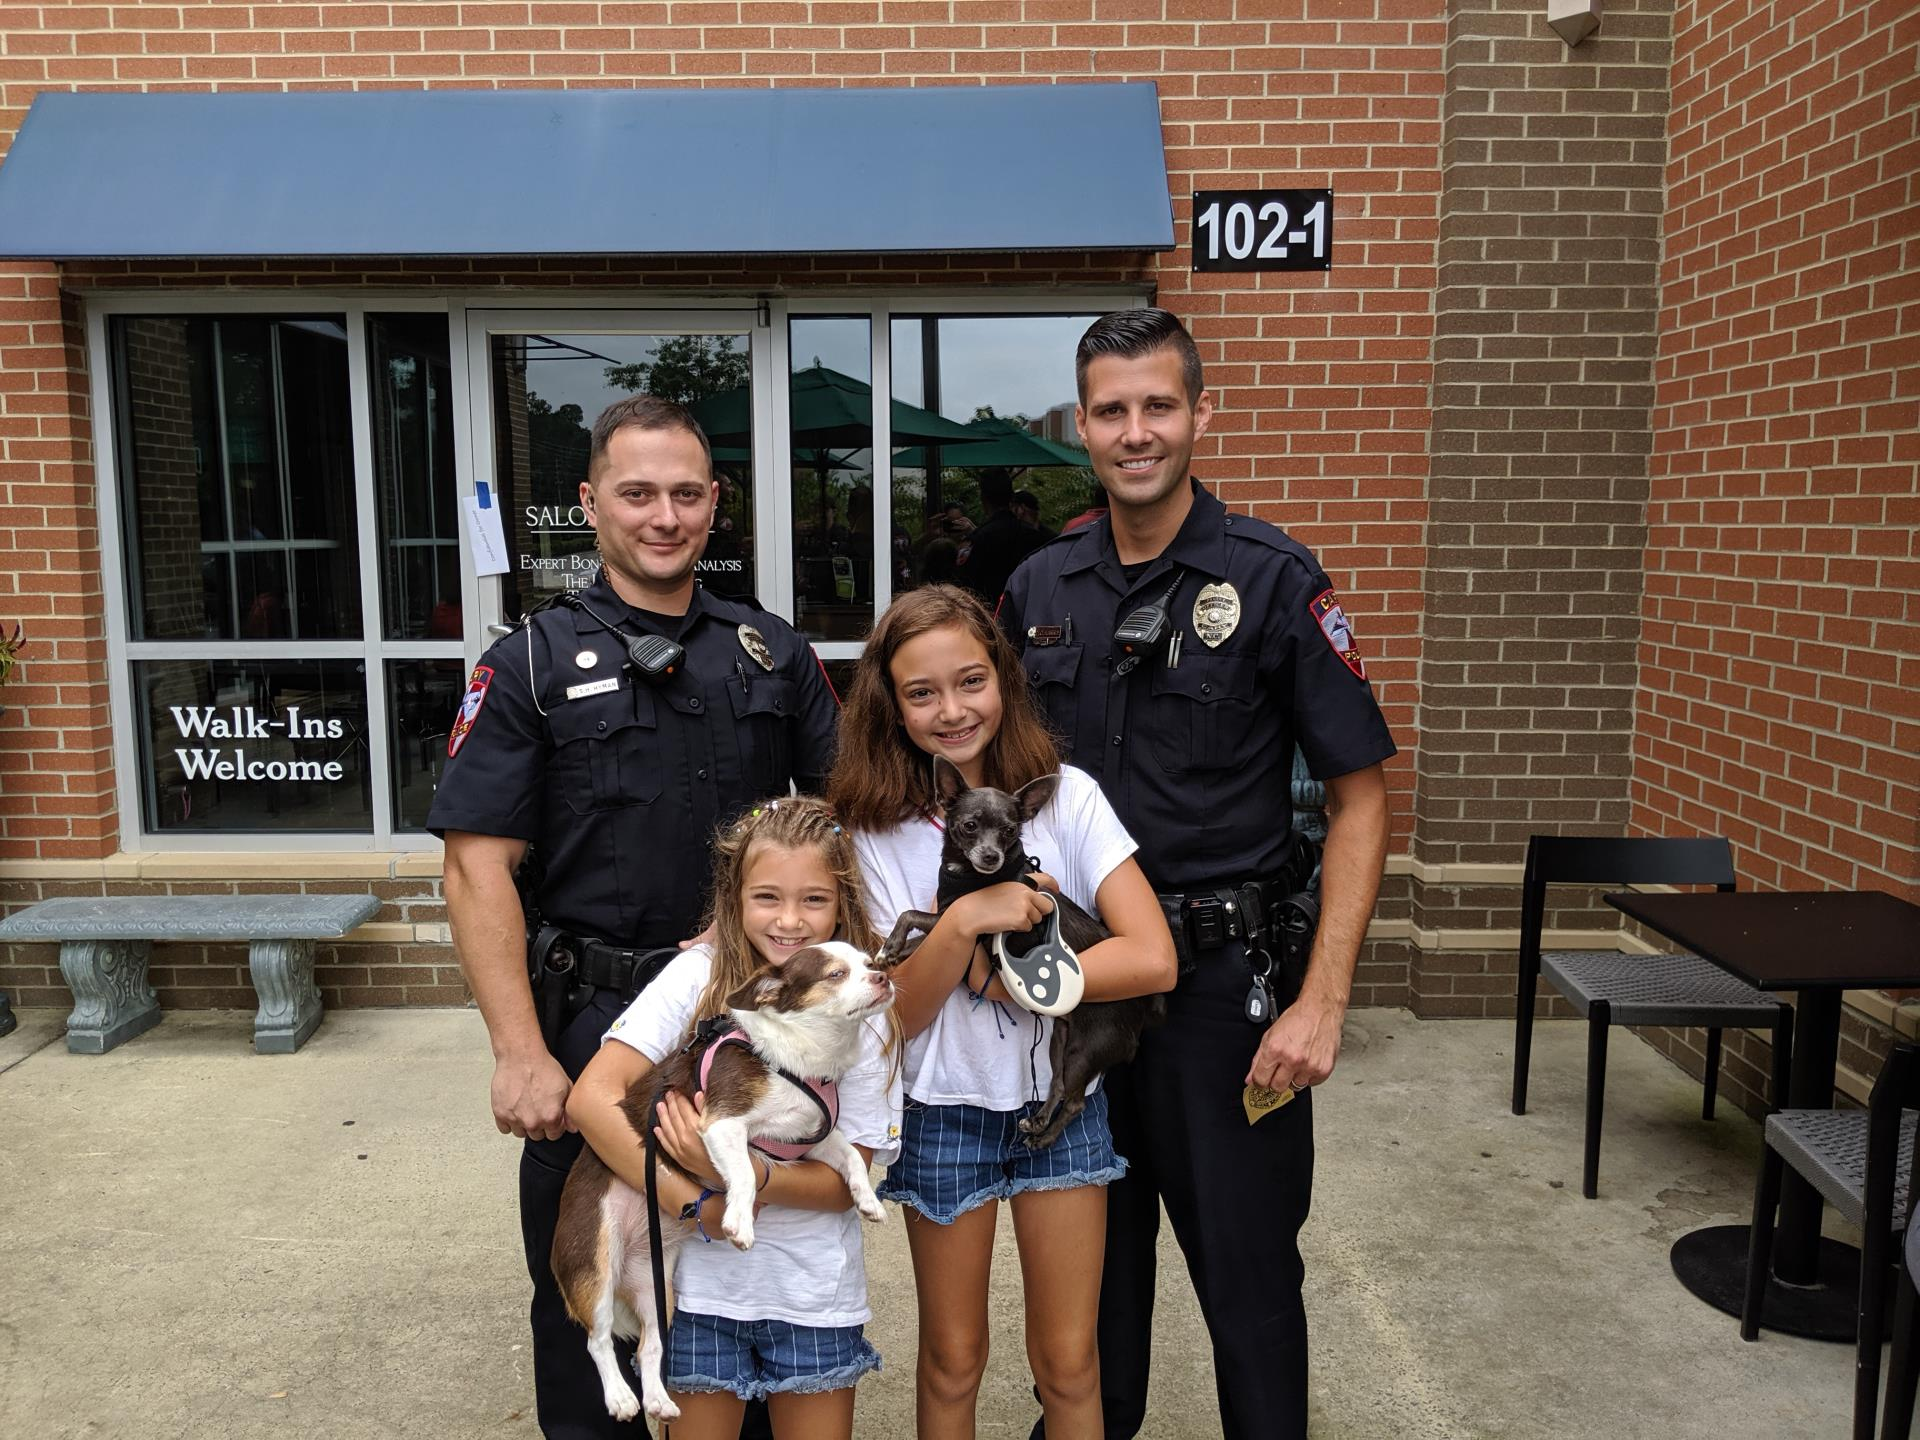 Police officers with two children holding puppies